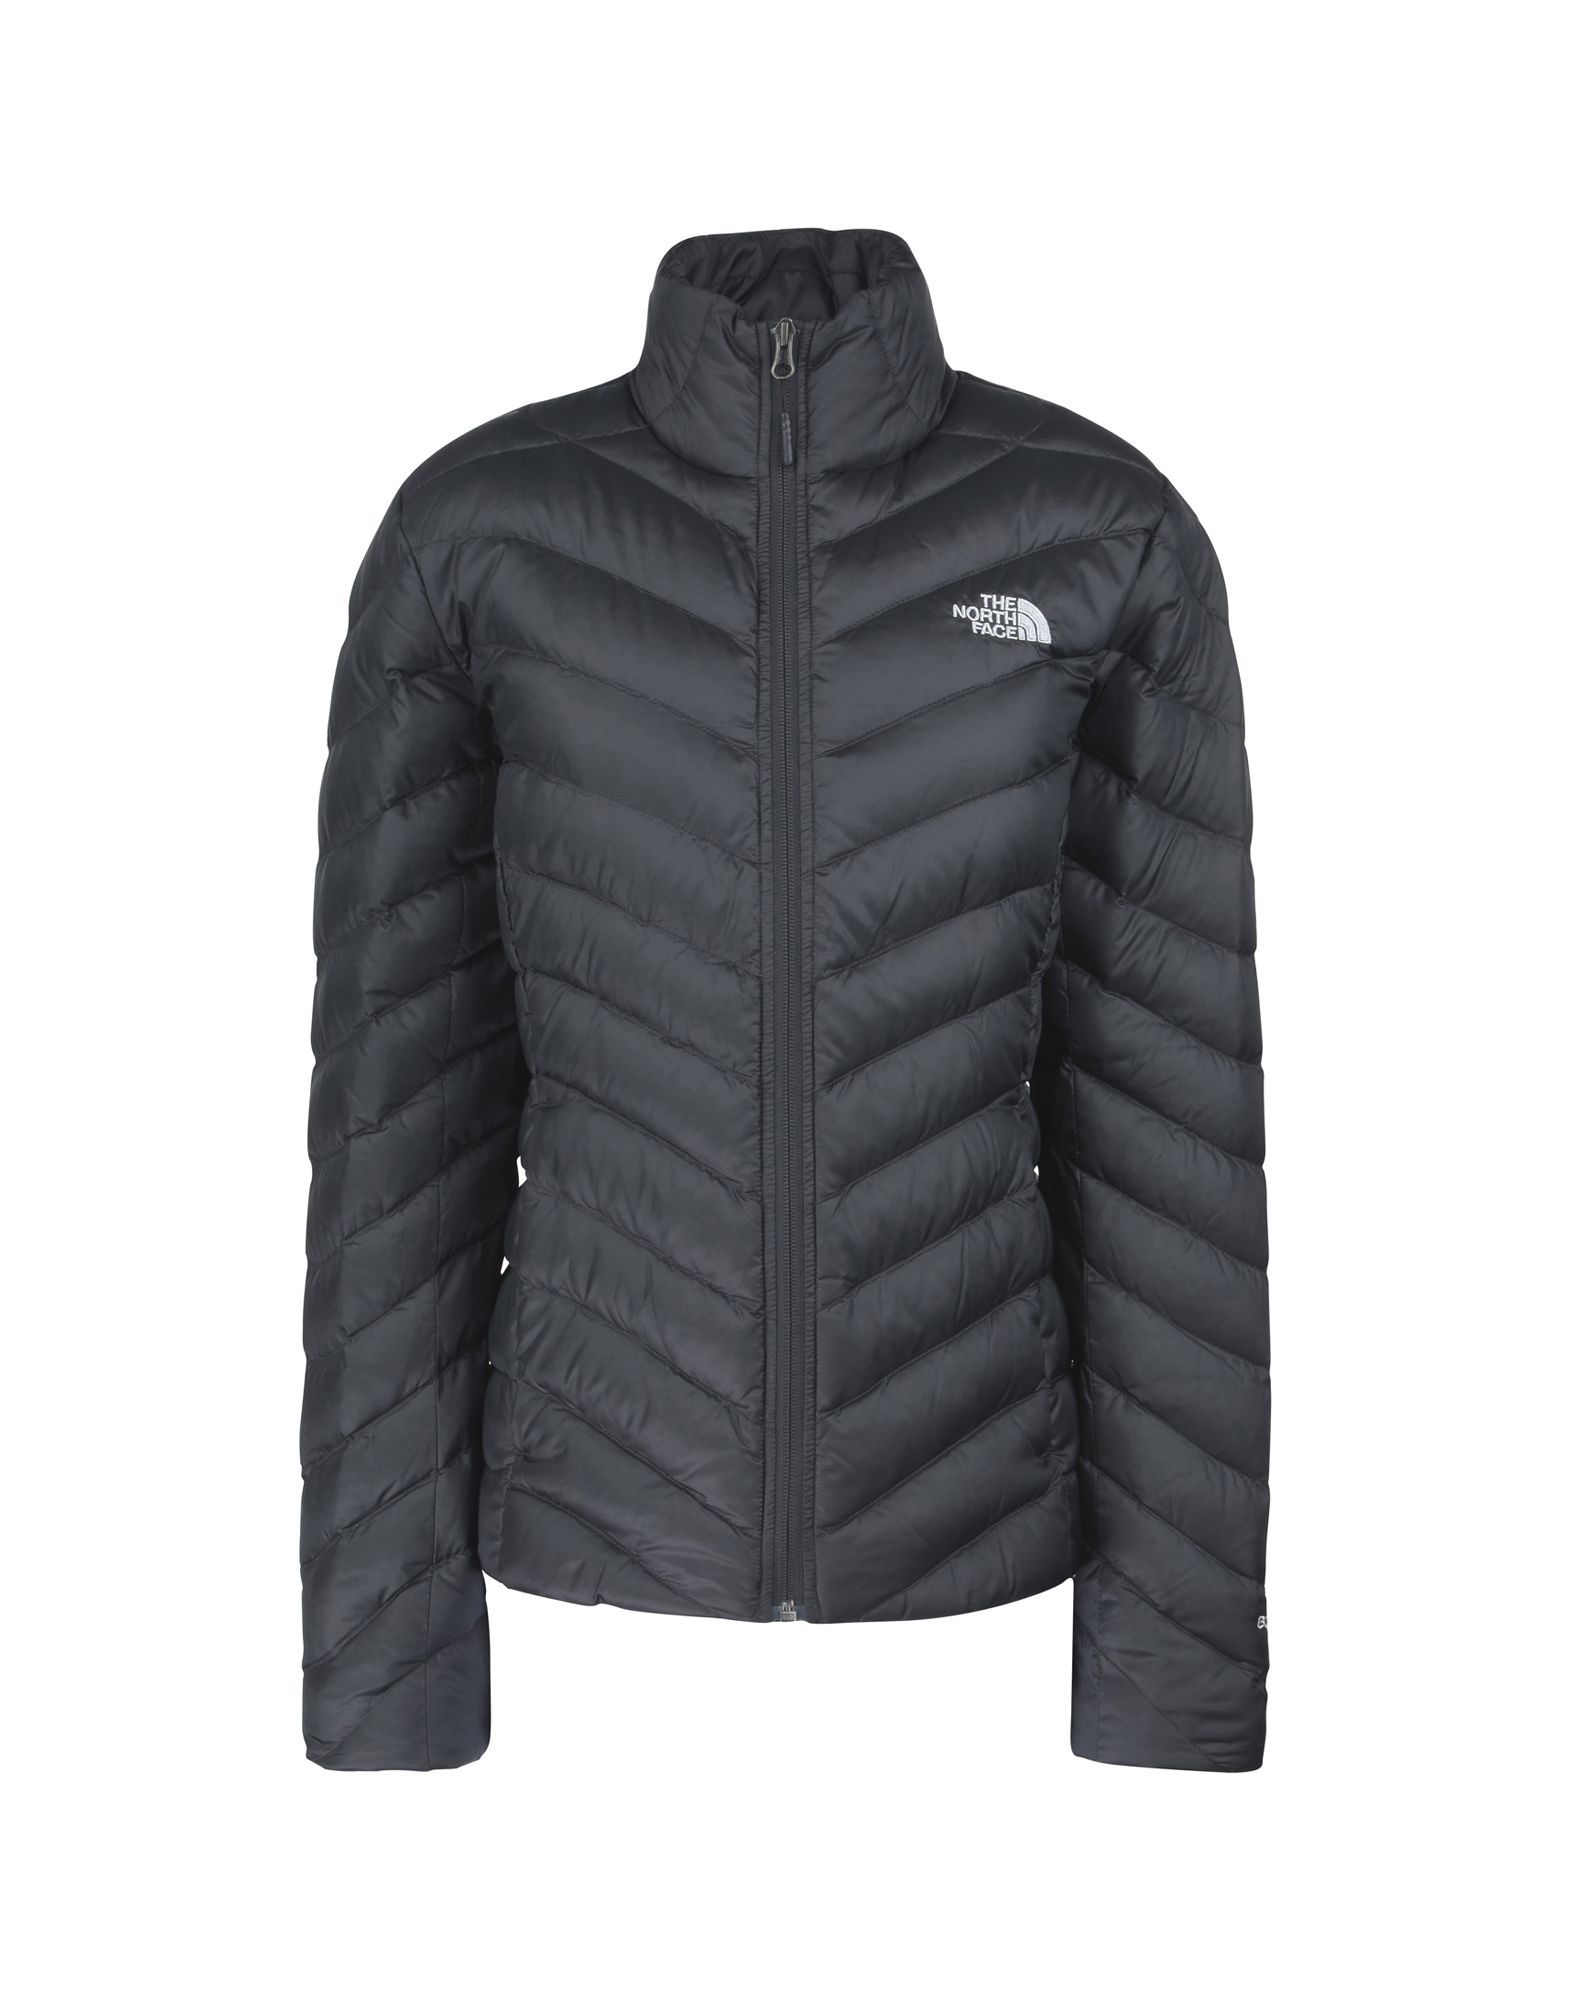 25c31e68d4 The North Face W Trevail Jacket 700 Down - Down Jacket - Women The ...